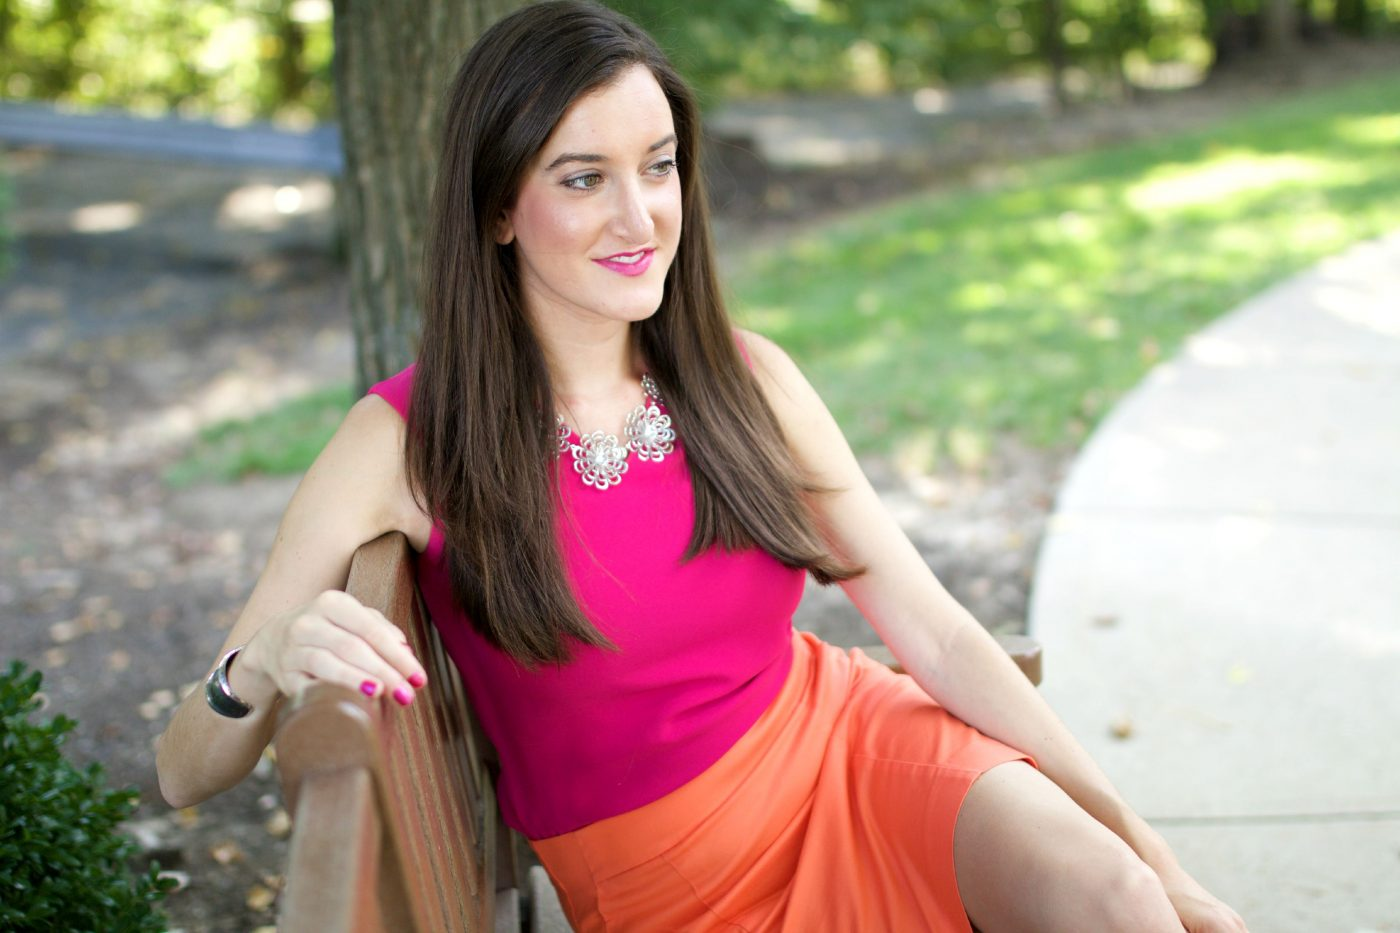 Pink and Orange Color Blocked Outfit